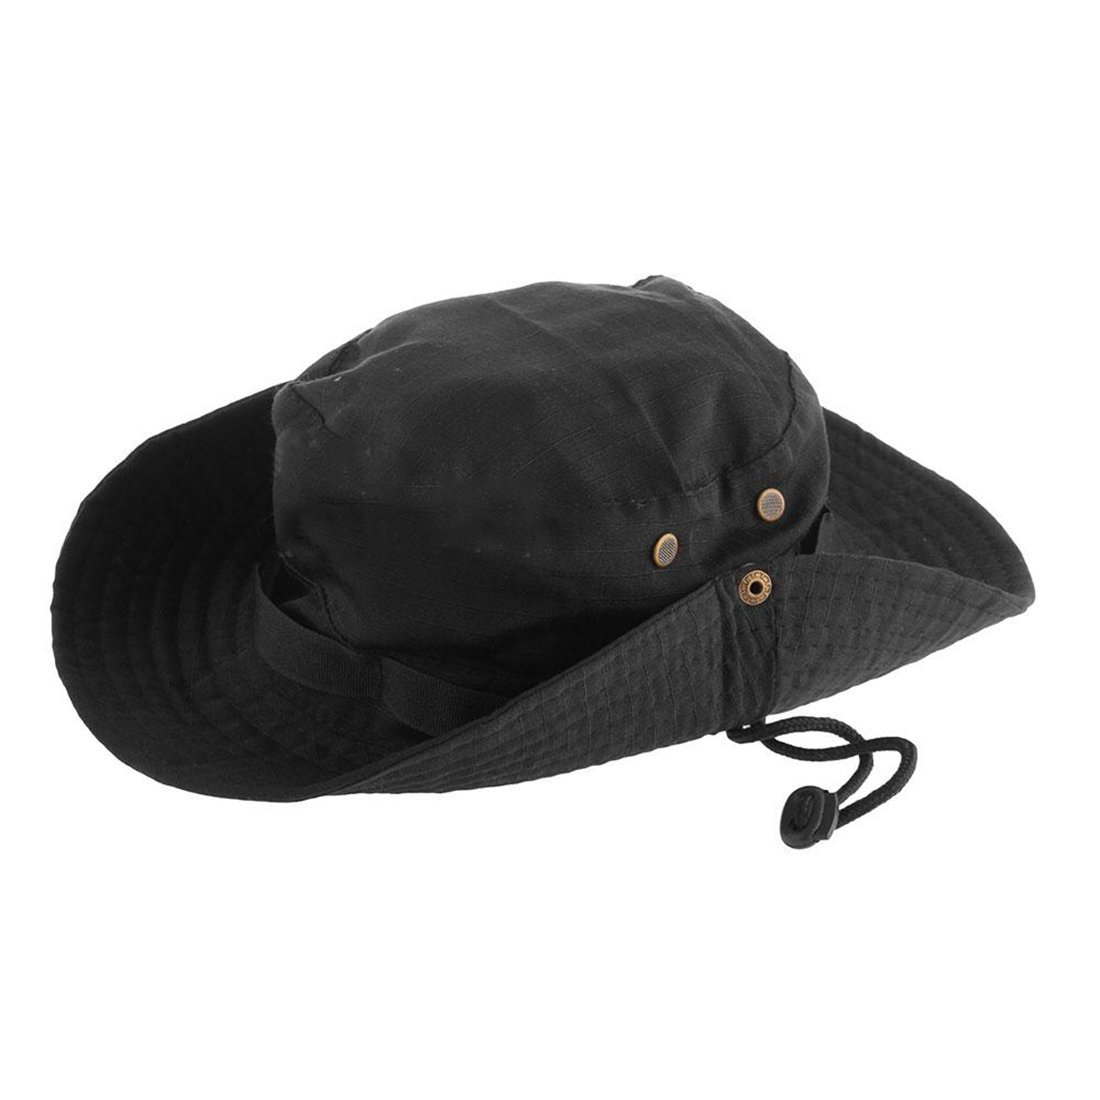 408e5cb935ac3 Wide Brim Bucket Hat Black Fishing Camping Sunshade Hat Traveling Hiking  Bonnie Hat With Adjustable Straps Mens Sports Caps